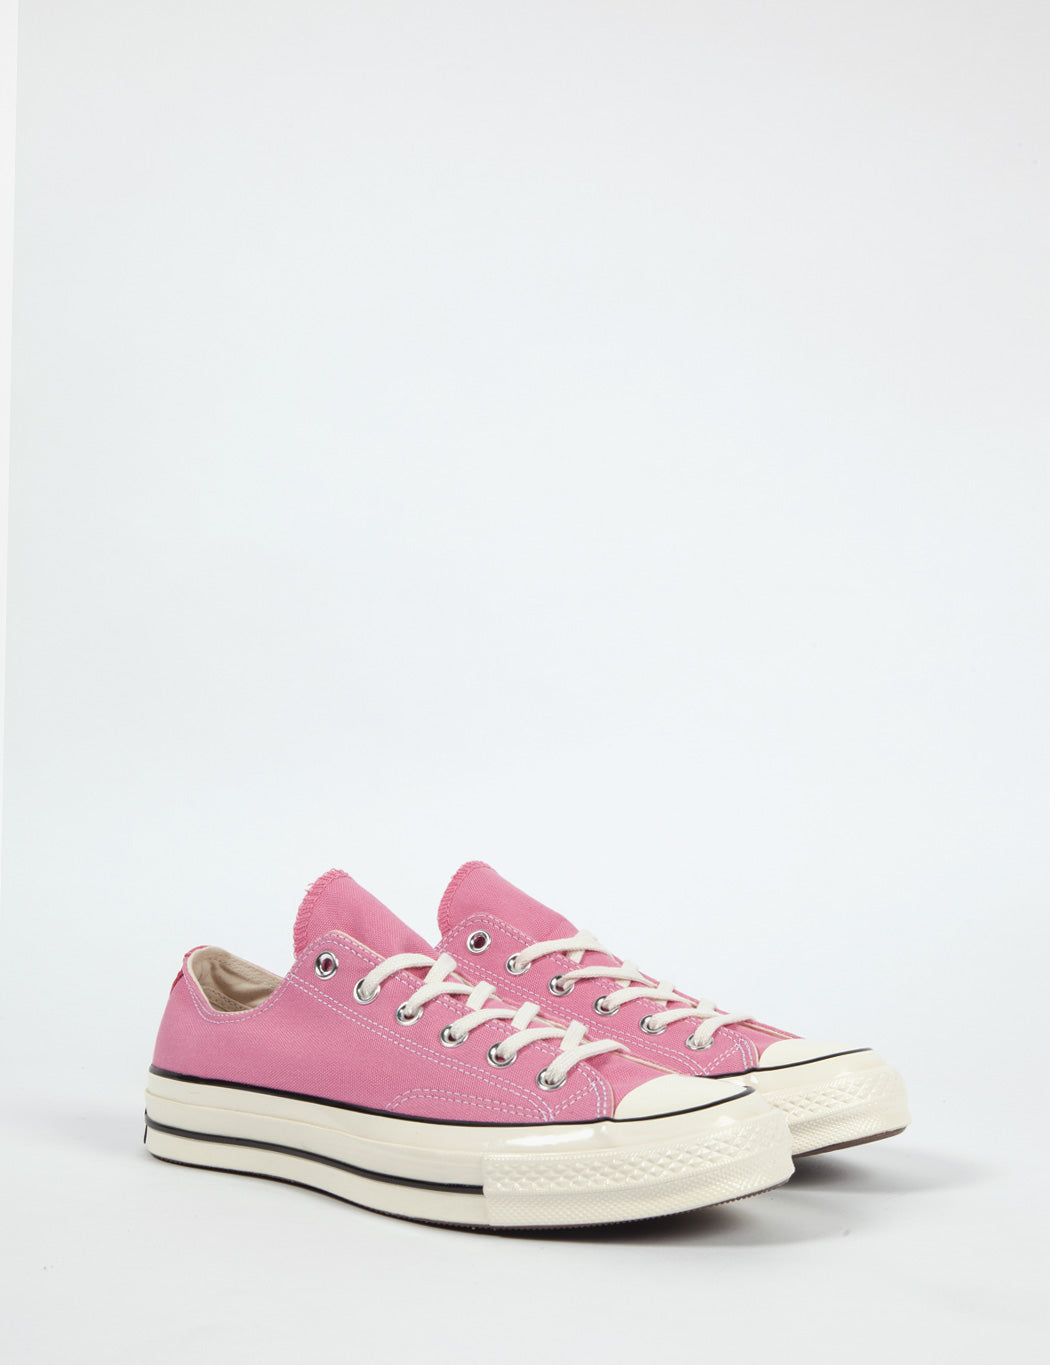 Converse 70's Chuck Taylor Low (Canvas) - Chateau Rose